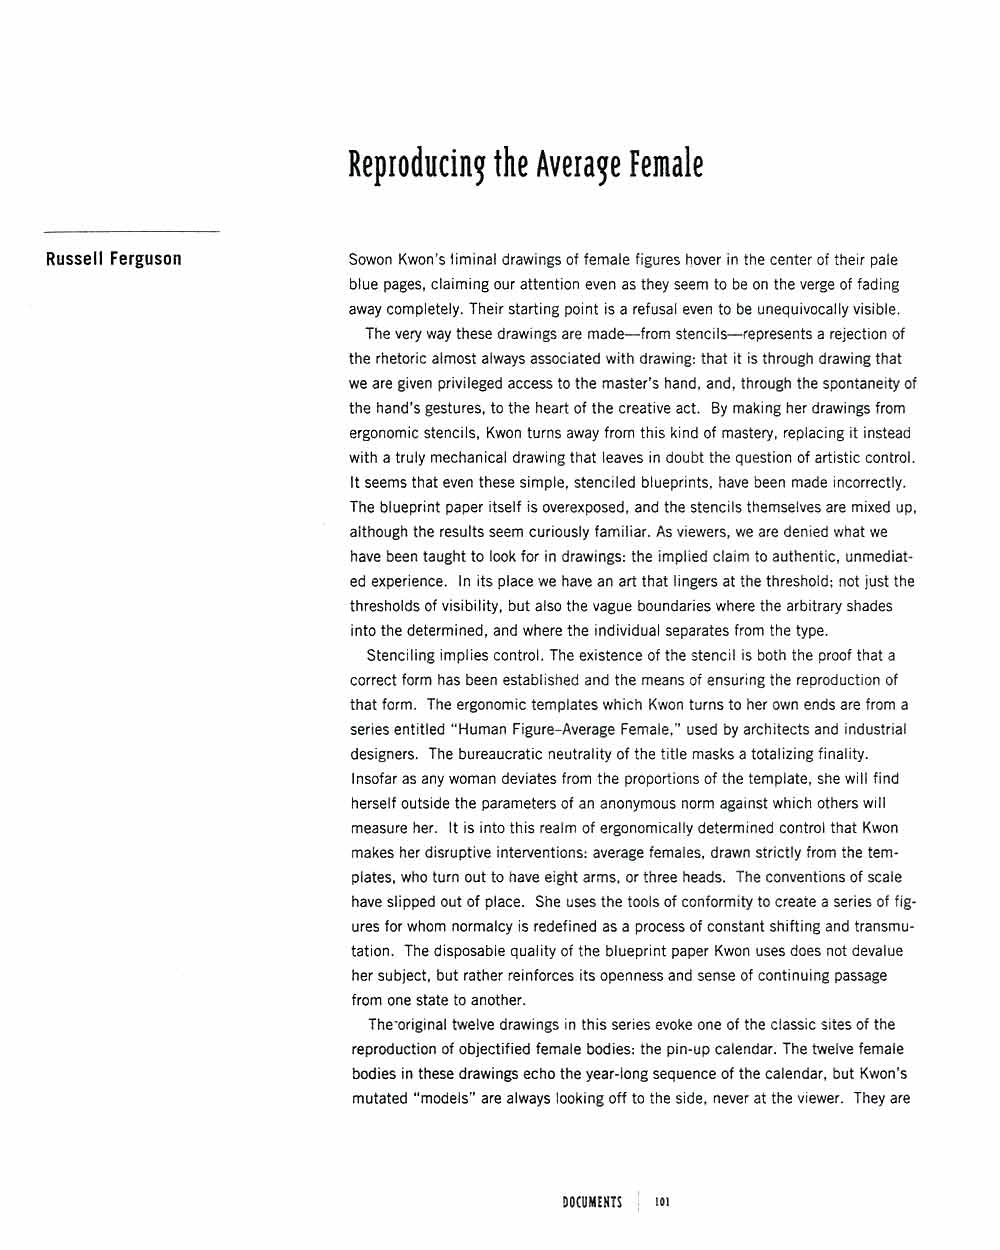 Reproducing the Average Female, article, pg 1